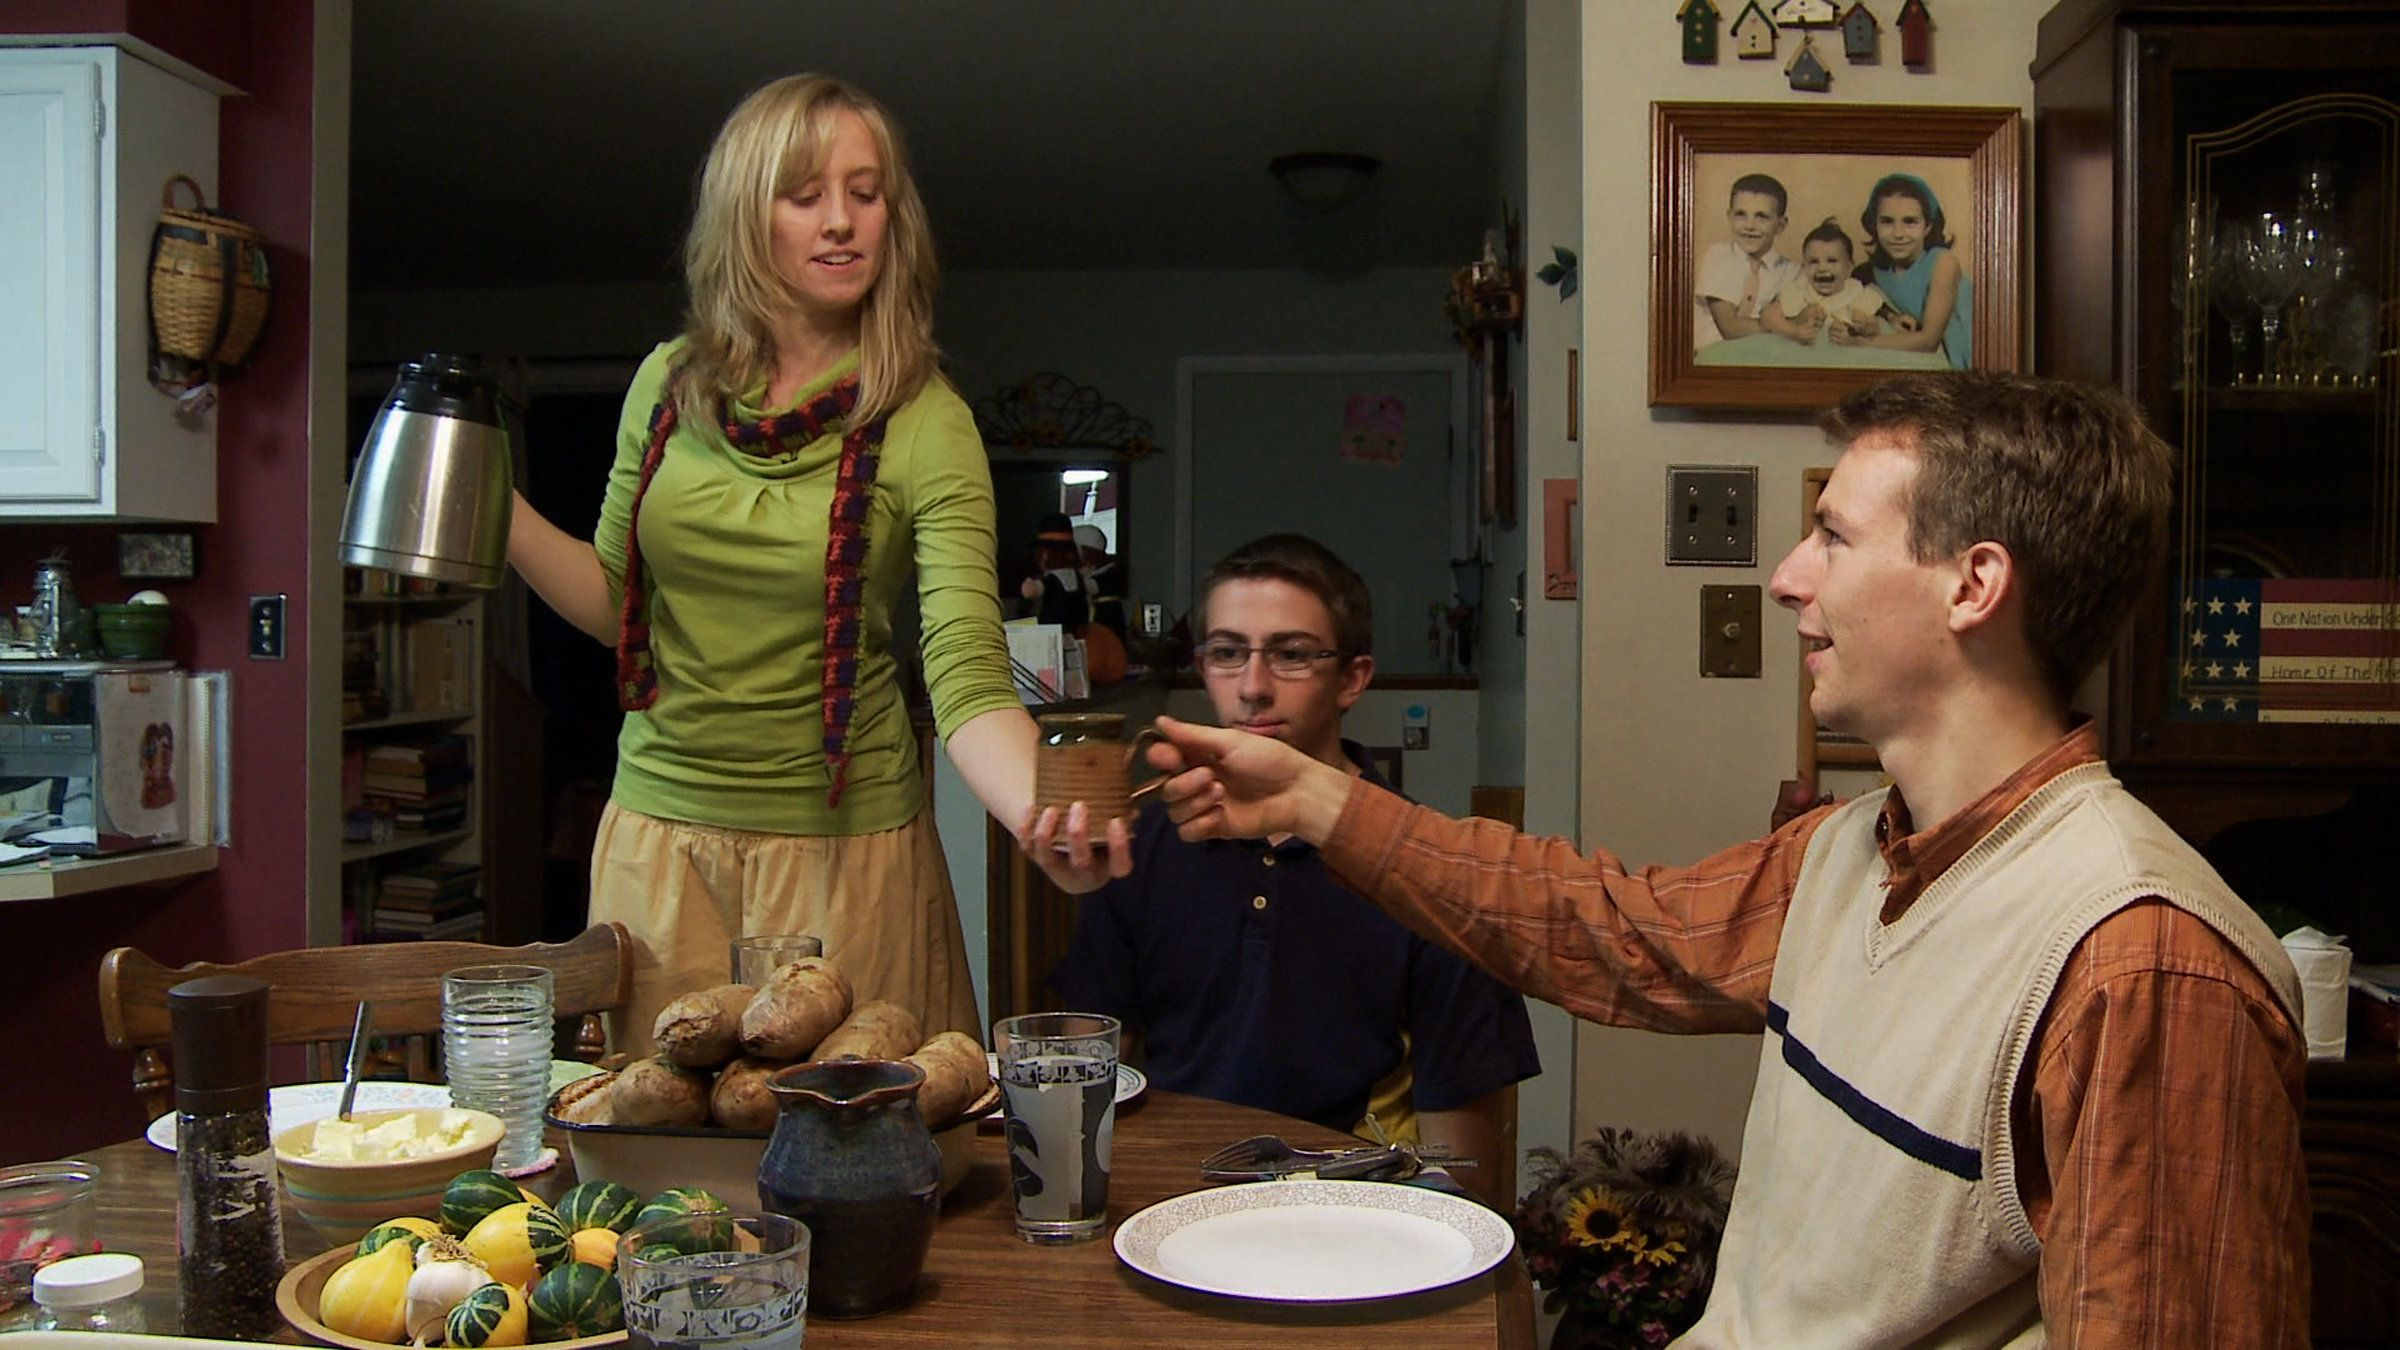 Kelly Boggus serves waterto Ross and his younger brother at a family dinner orchestrated to see if the young people mig